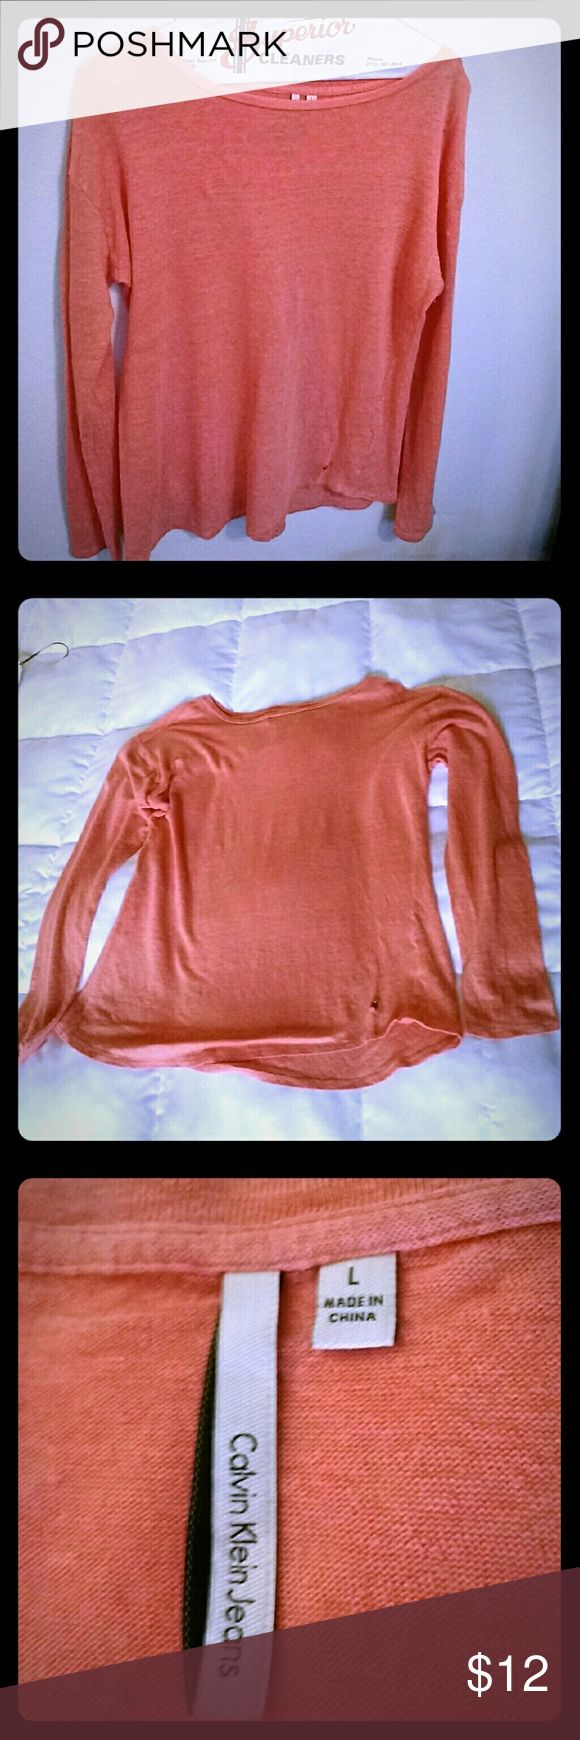 Calvin Klein Jeans Long Sleeve Linen Tee Shirt This shirt is pre-loved and well cared for, in great condition. Shirttail hemline?, light weight, semi sheer, boat neckline. Hangs 24 inches. Salmon (geranium) color. Tops